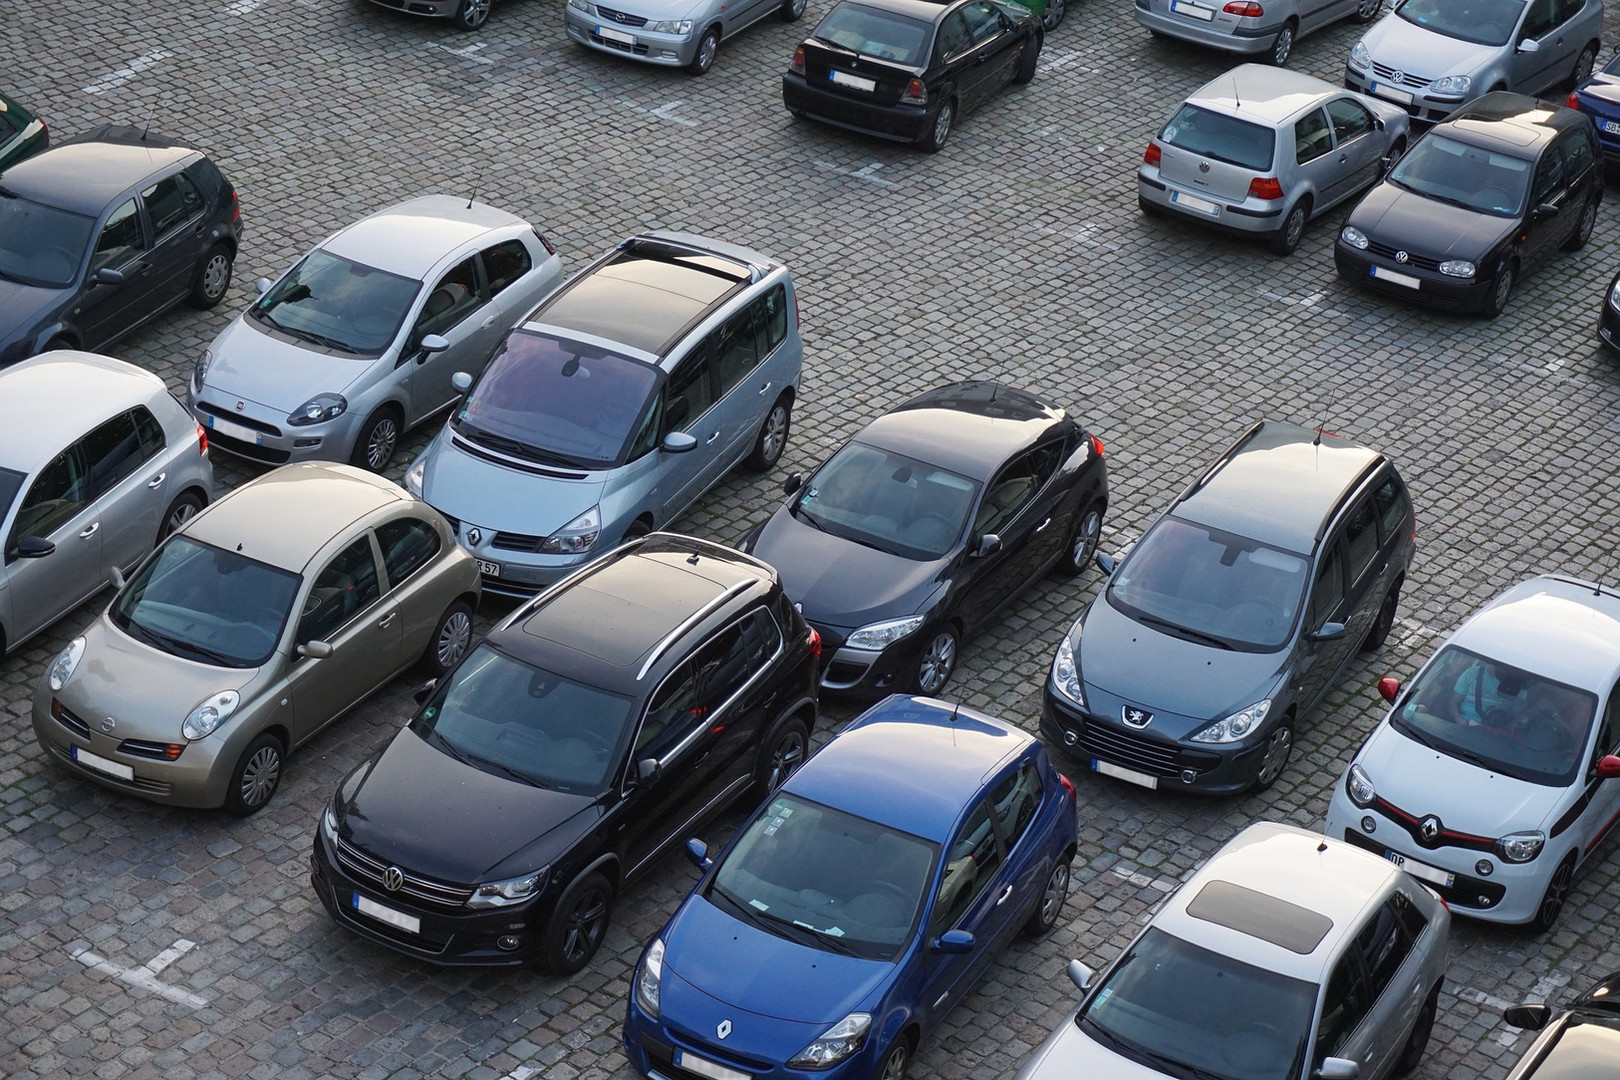 Revealed: The Cheapest and Most Expensive Airport Car Parking